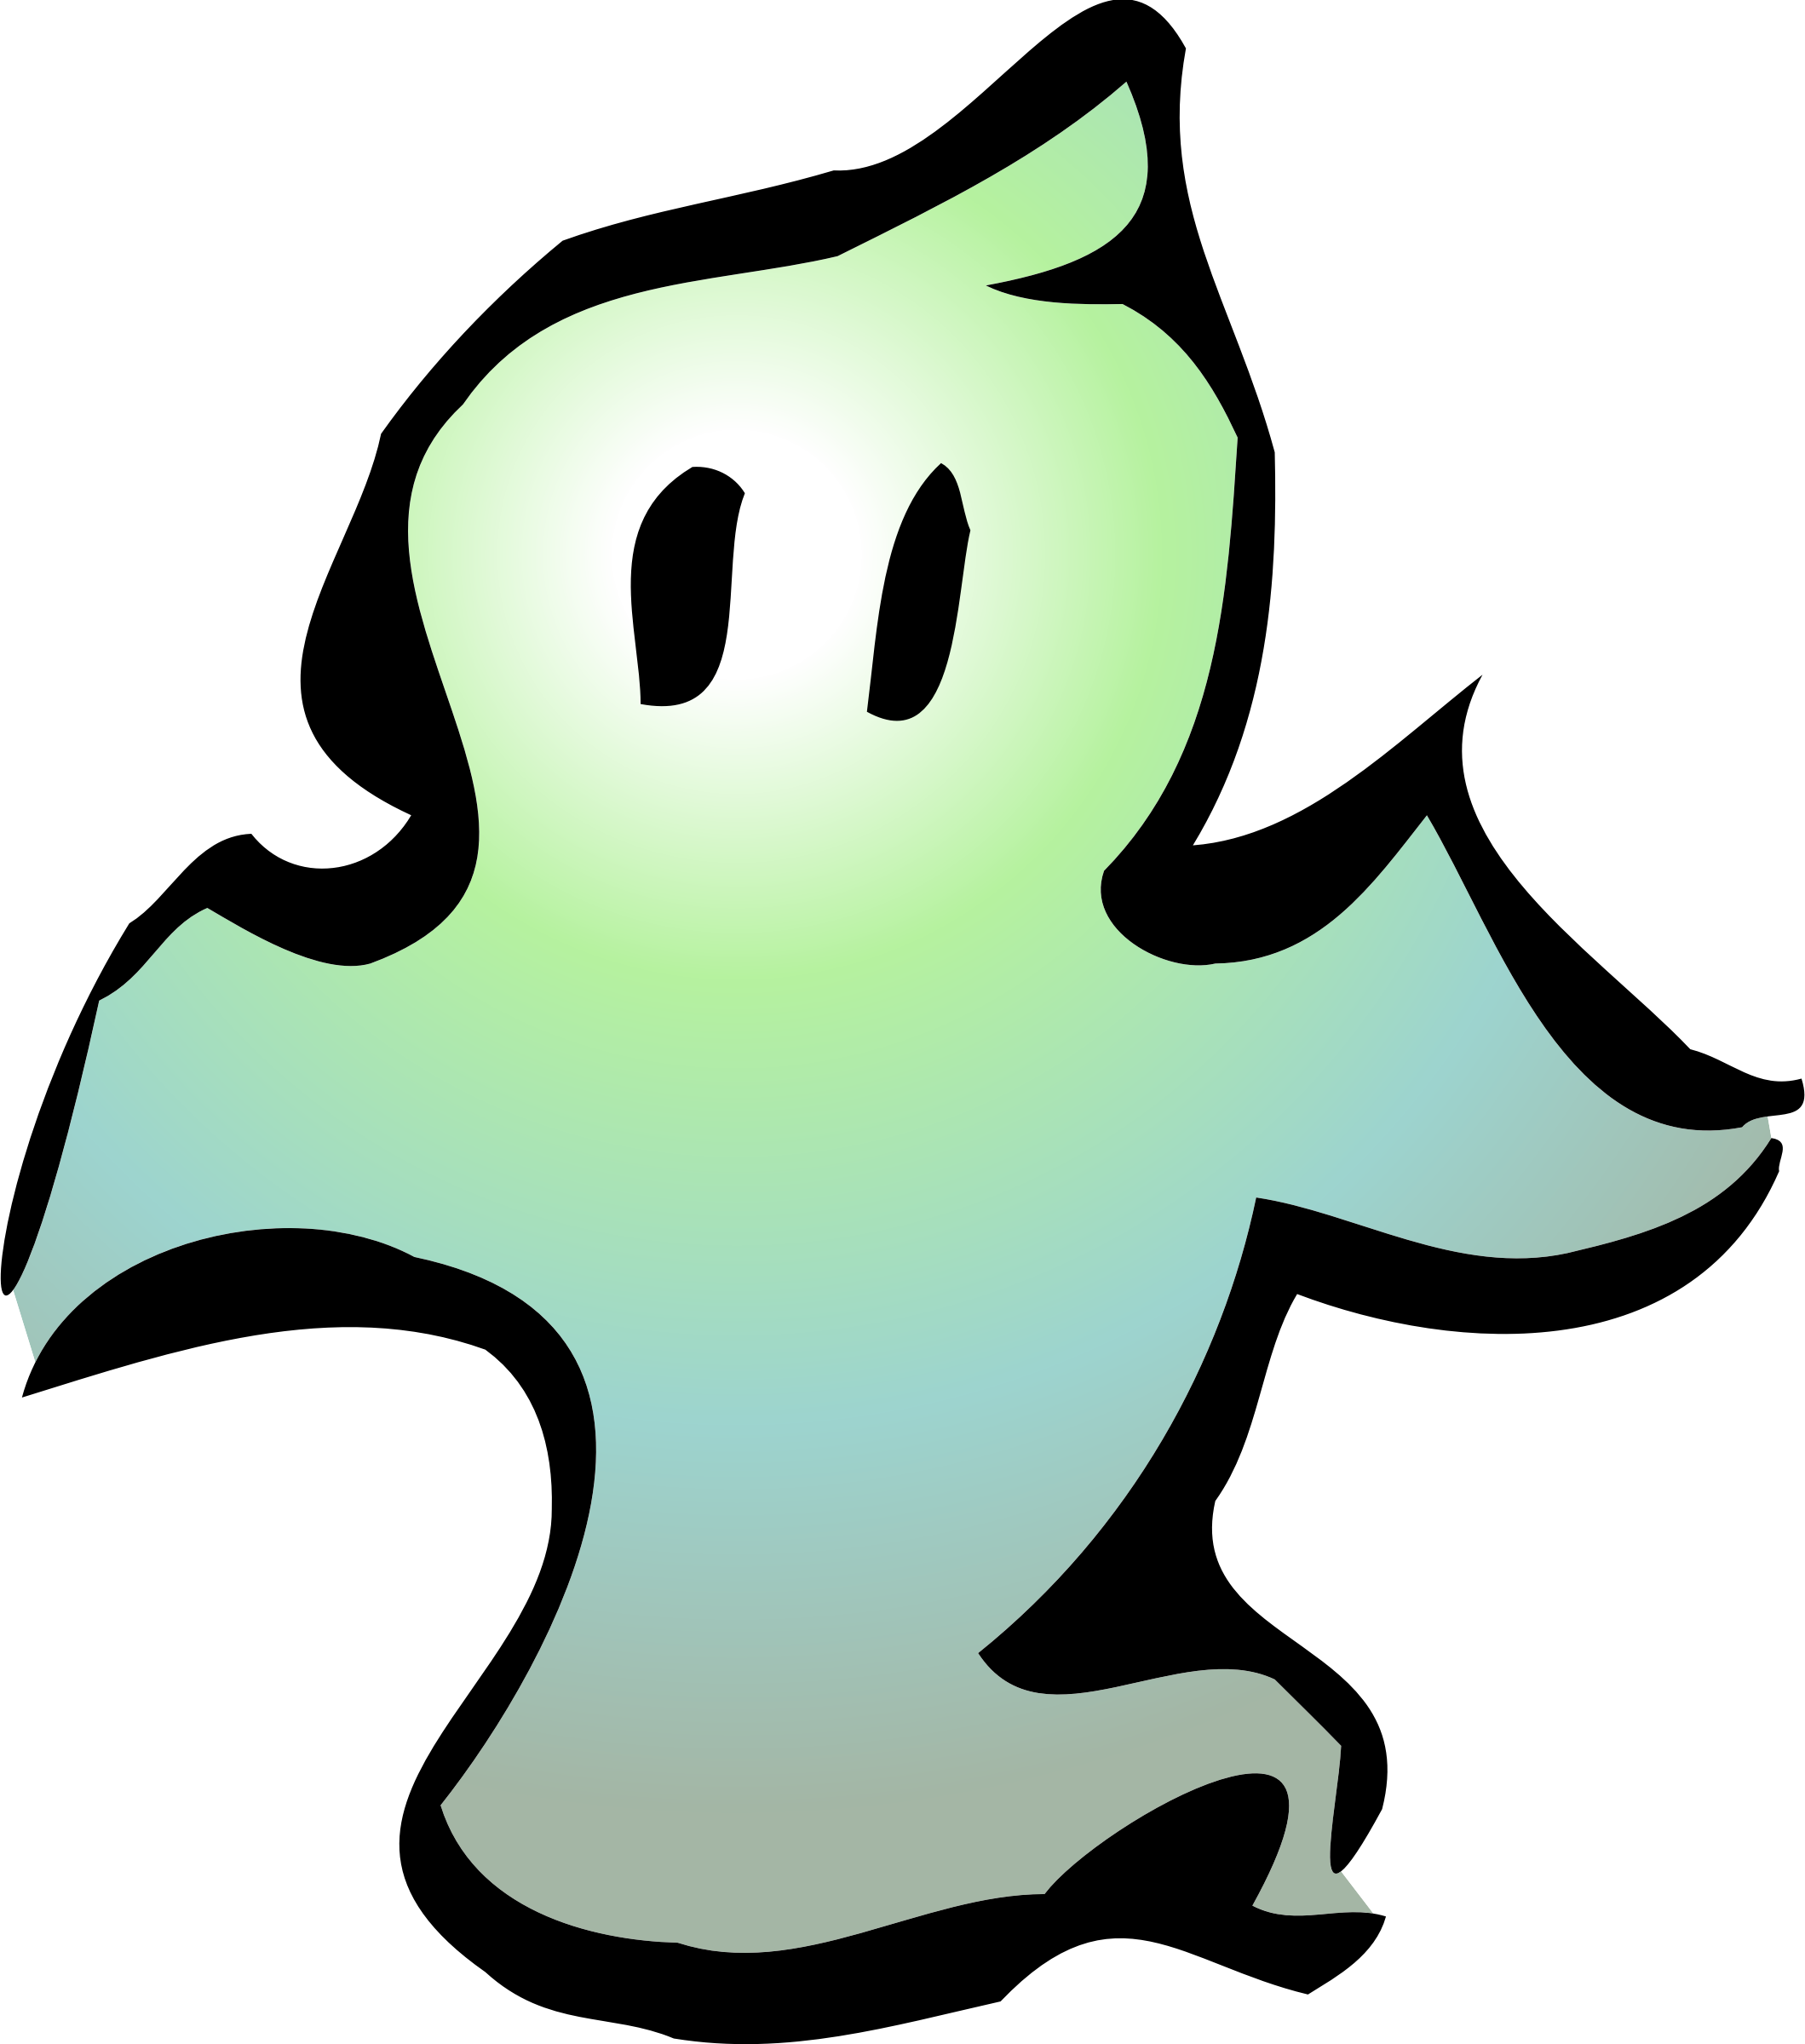 ghost icon by Klàro